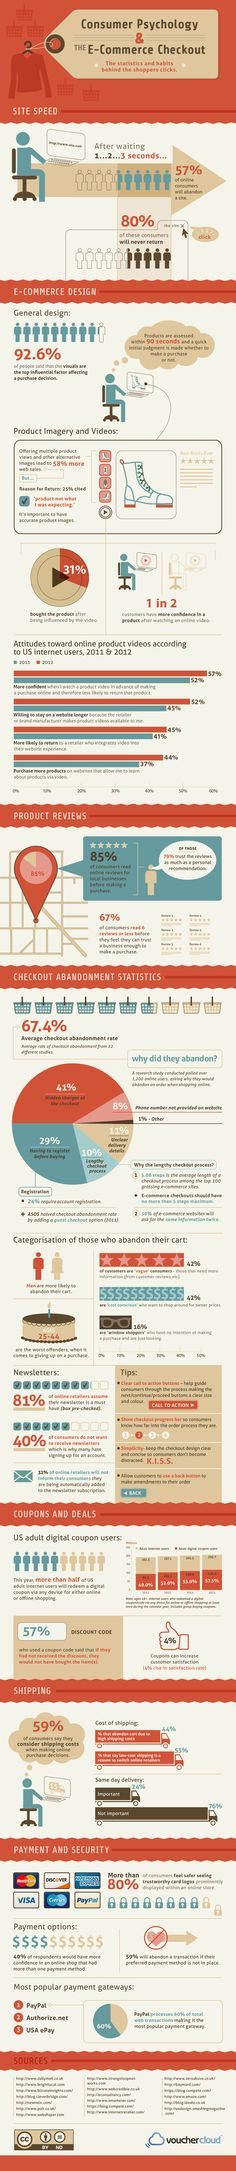 Why You're Really Losing Online Sales #infographic #ecommerce